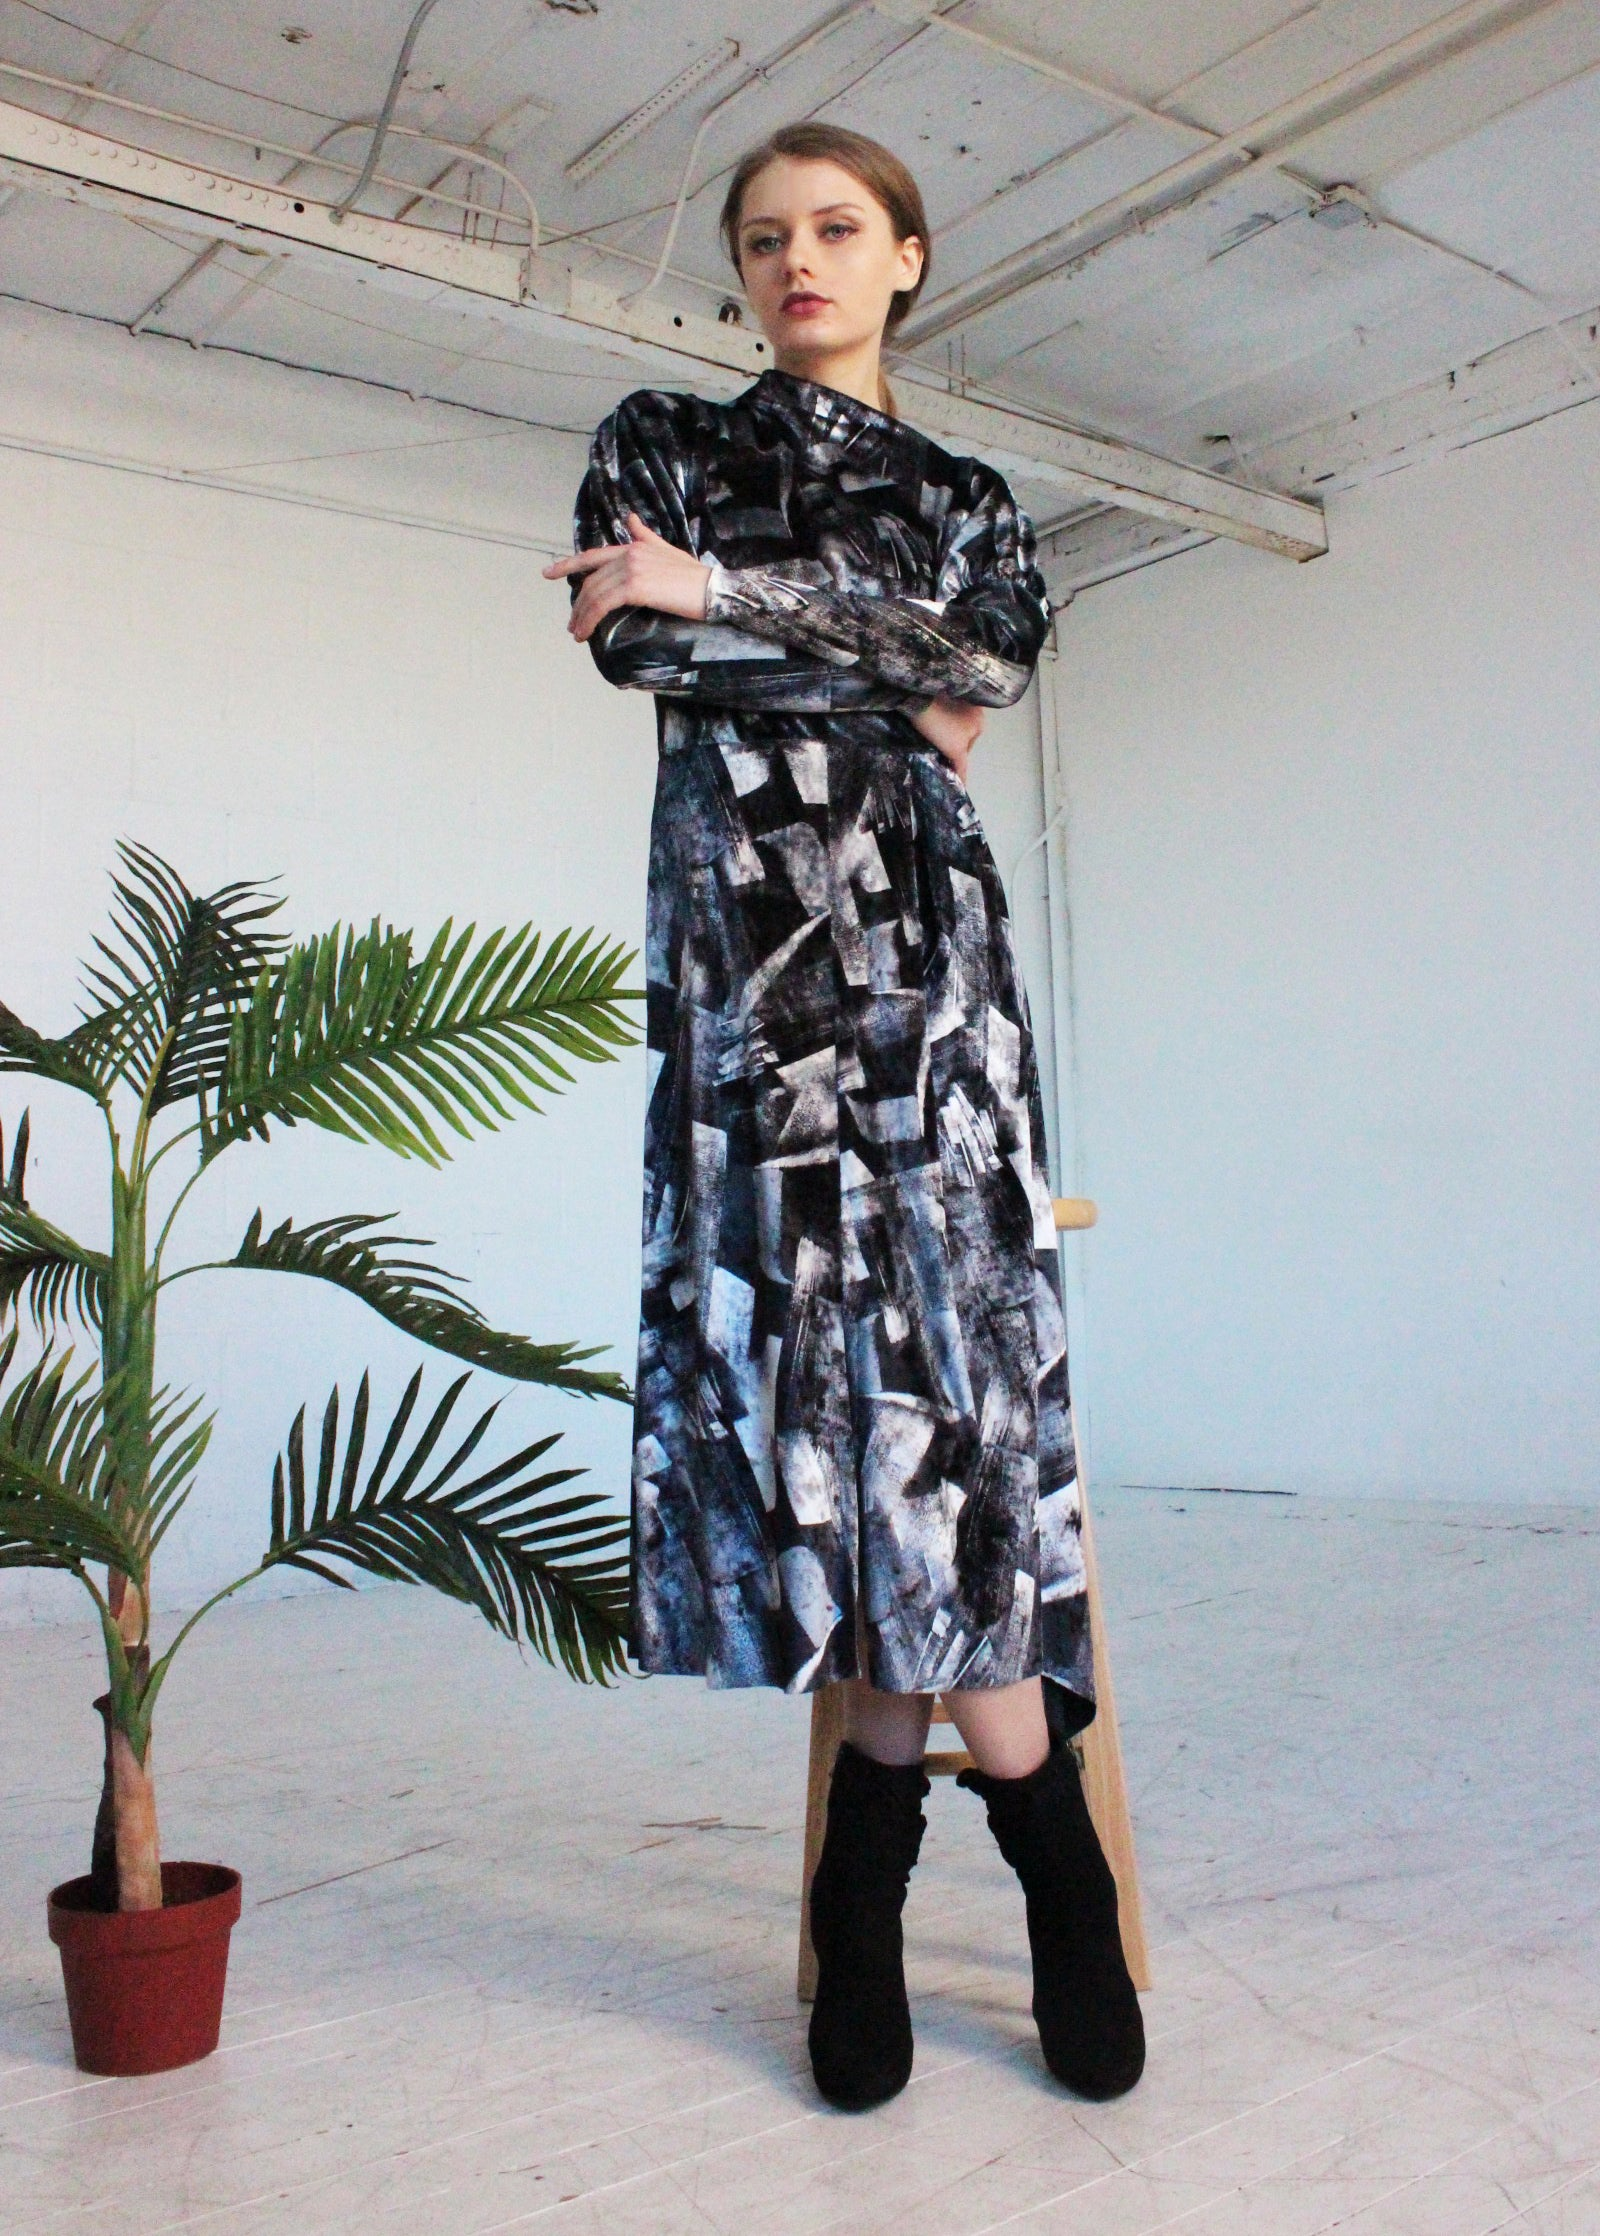 Ying Cai _ AW 21 Look 11 - 9